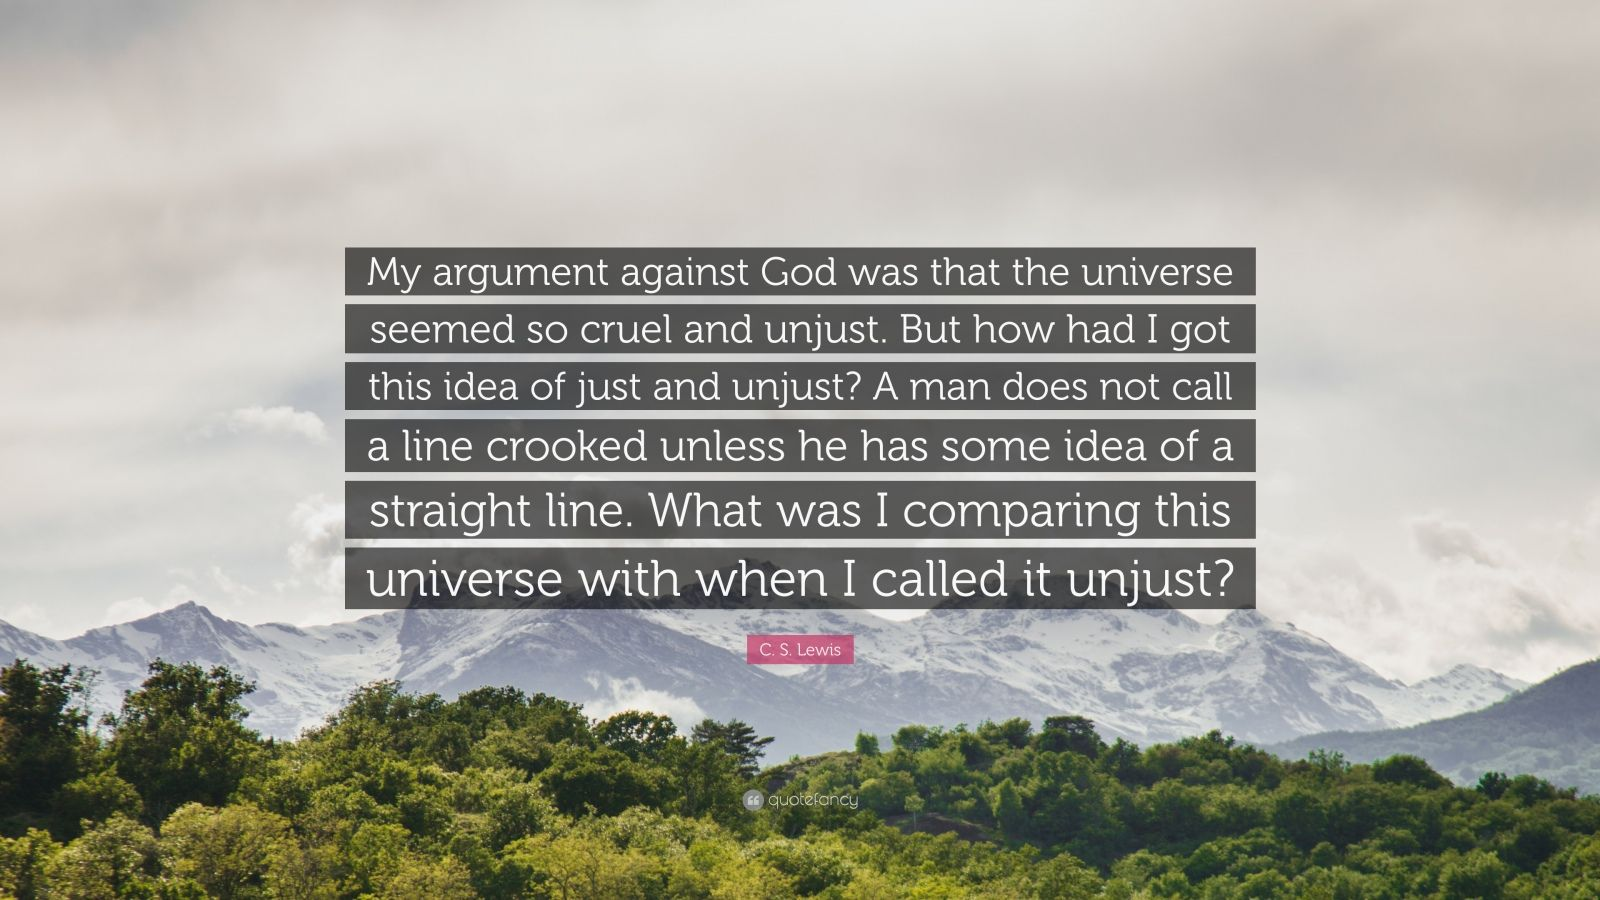 "C. S. Lewis Quote: ""My argument against God was that the universe seemed so cruel and unjust. But how had I got this idea of just and unjust? A man does not call a line crooked unless he has some idea of a straight line. What was I comparing this universe with when I called it unjust?"""